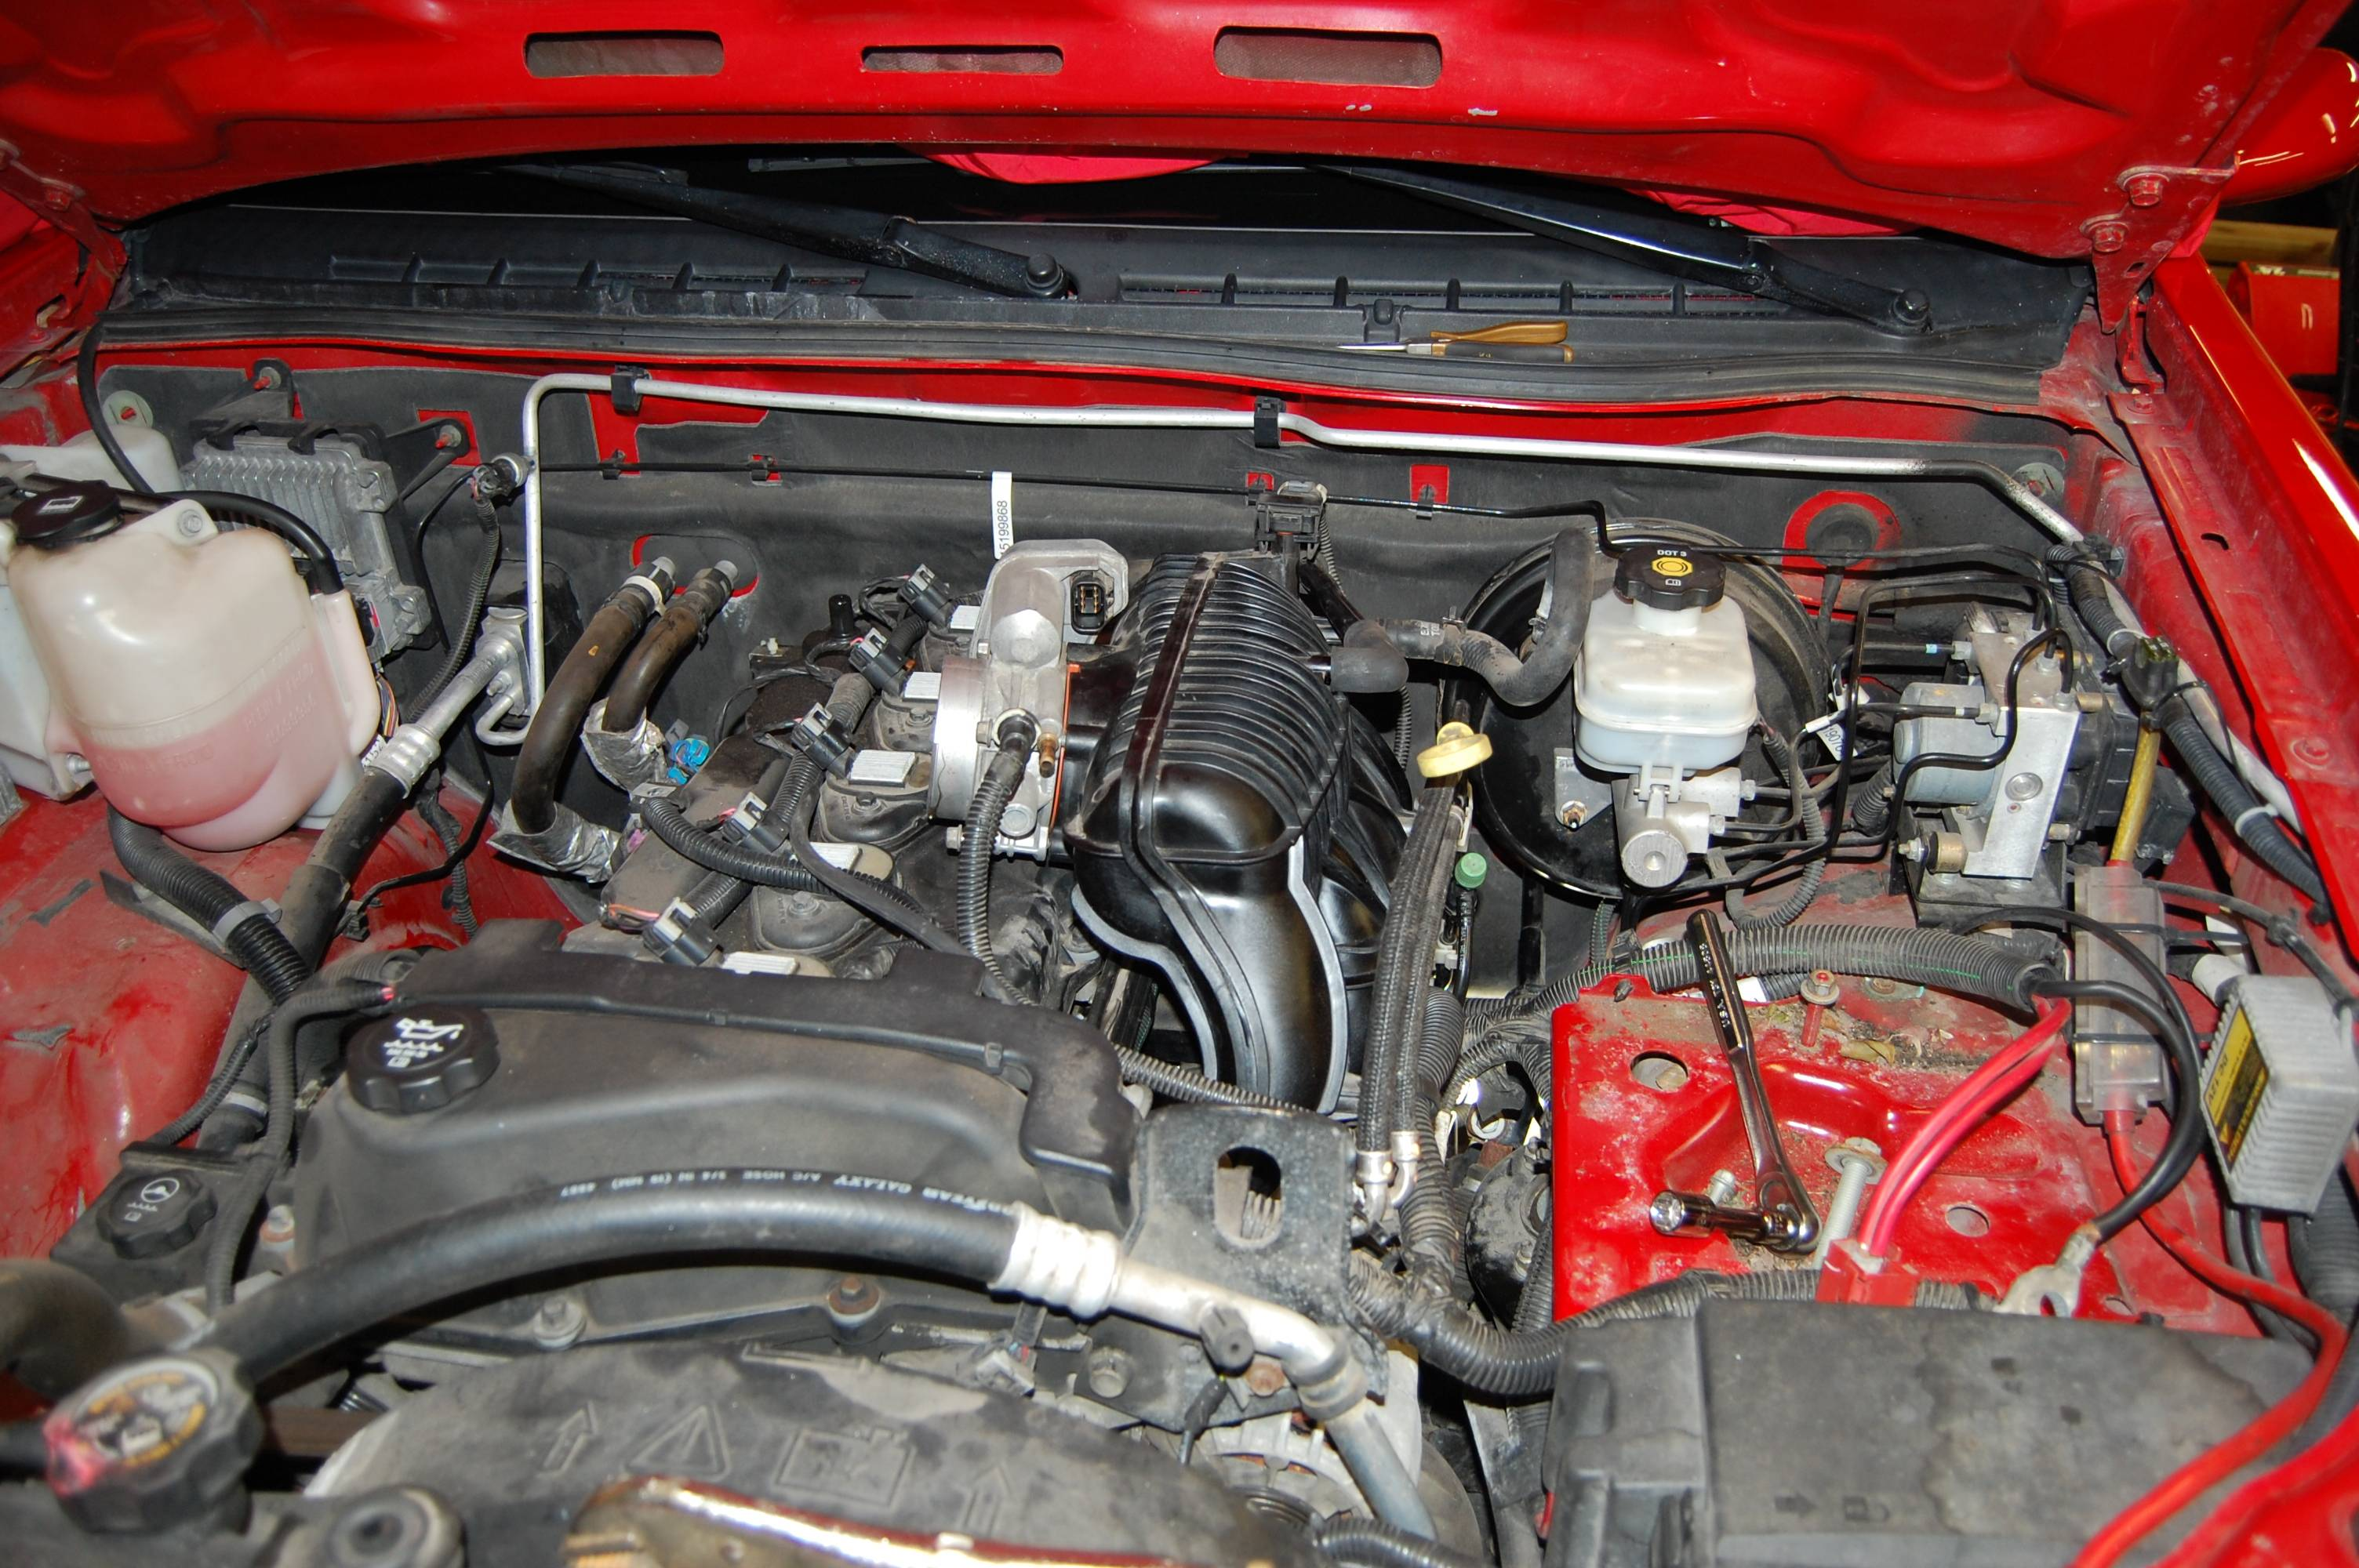 Chevrolet Tahoe besides Dsc K additionally Chevrolet Hhr Picture furthermore Pontiac Aztec also Pcv Valve Location. on 2005 chevy colorado pcv valve location